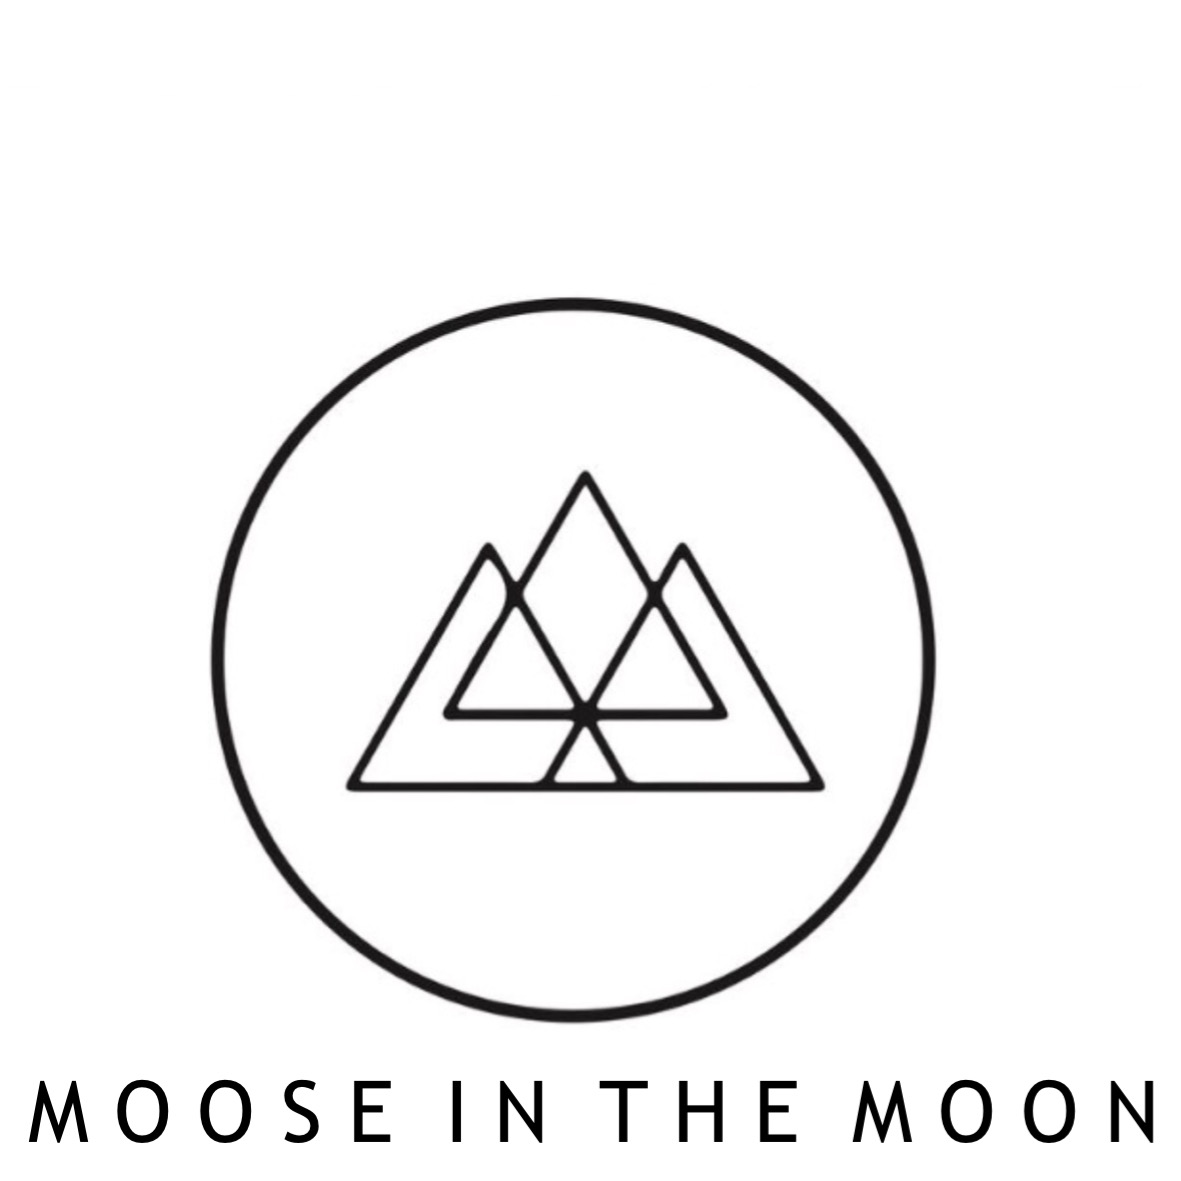 MOOSE IN THE MOON